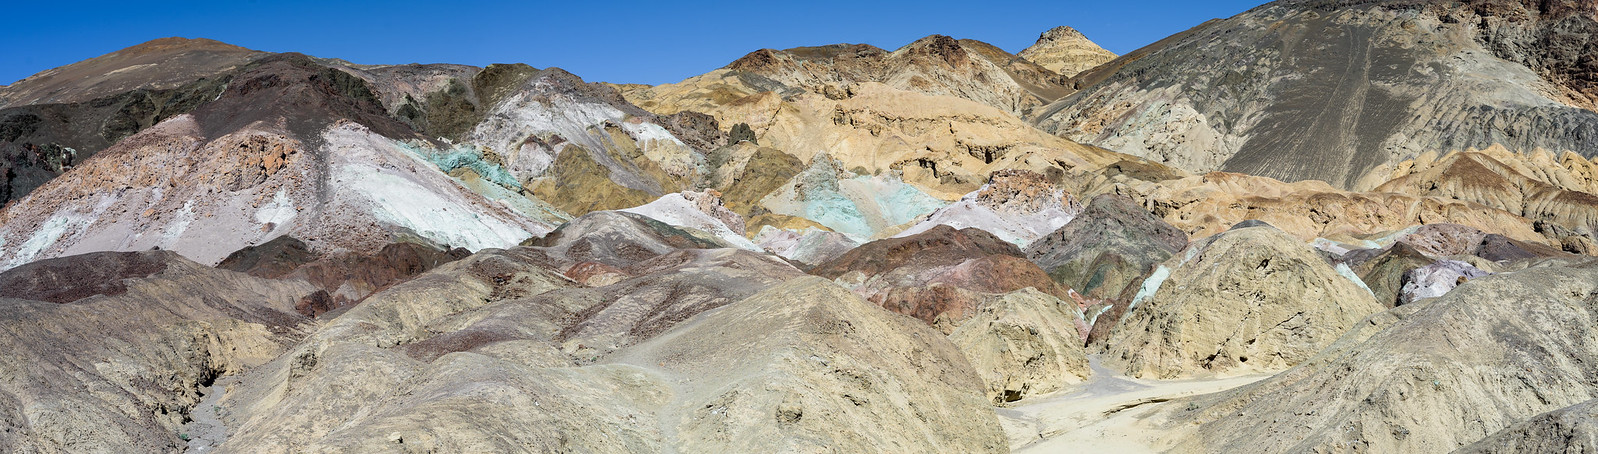 Artist Pallet (Death Valley) 38528229065_7856fab0b1_h